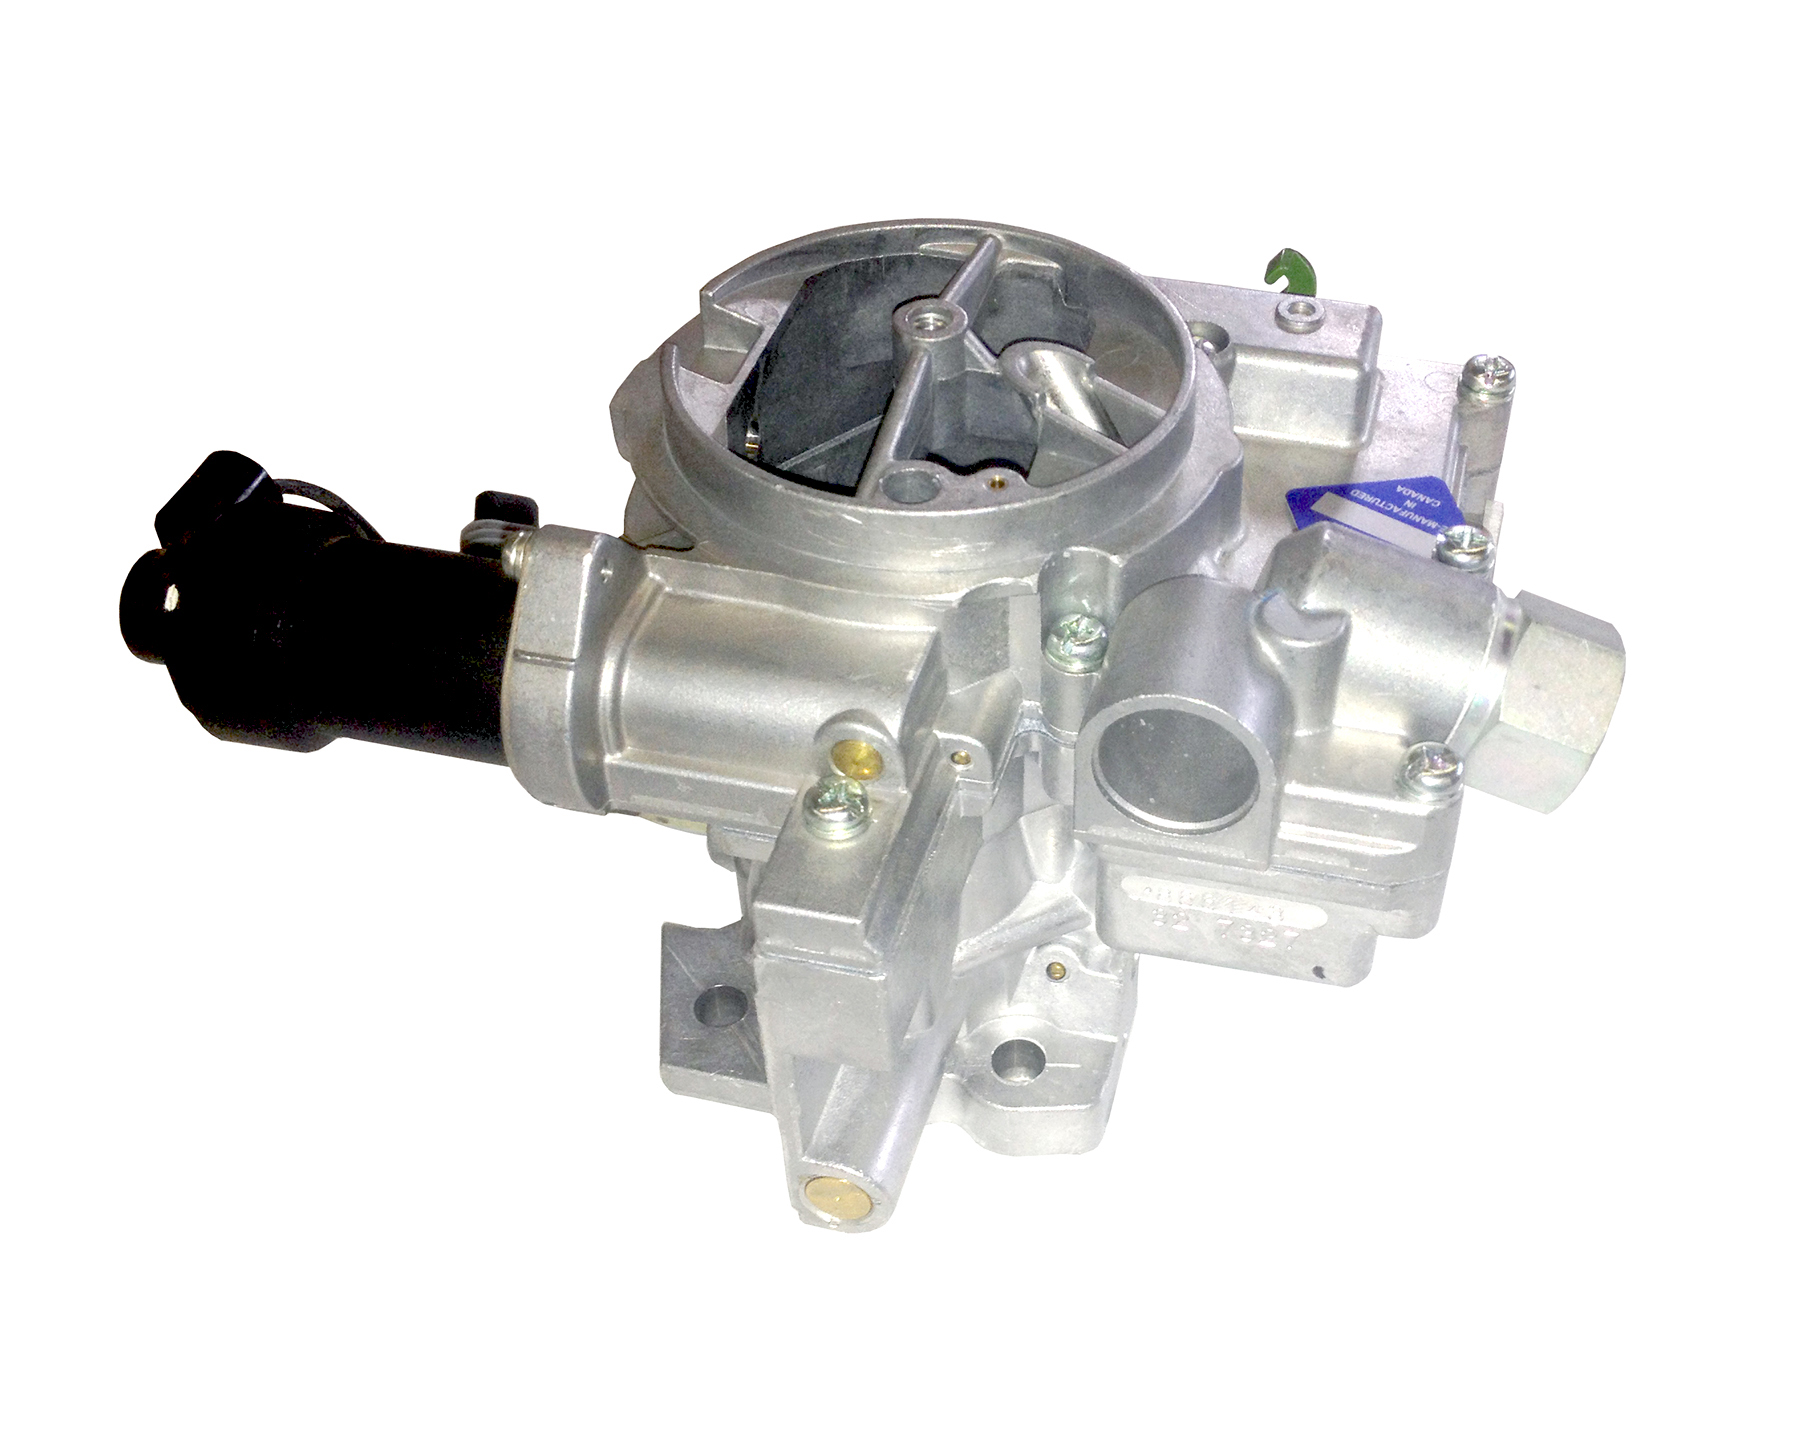 Carburetor 2bbl Mercard for Mercruiser 5.0 TKS Engine 3310-866142A03